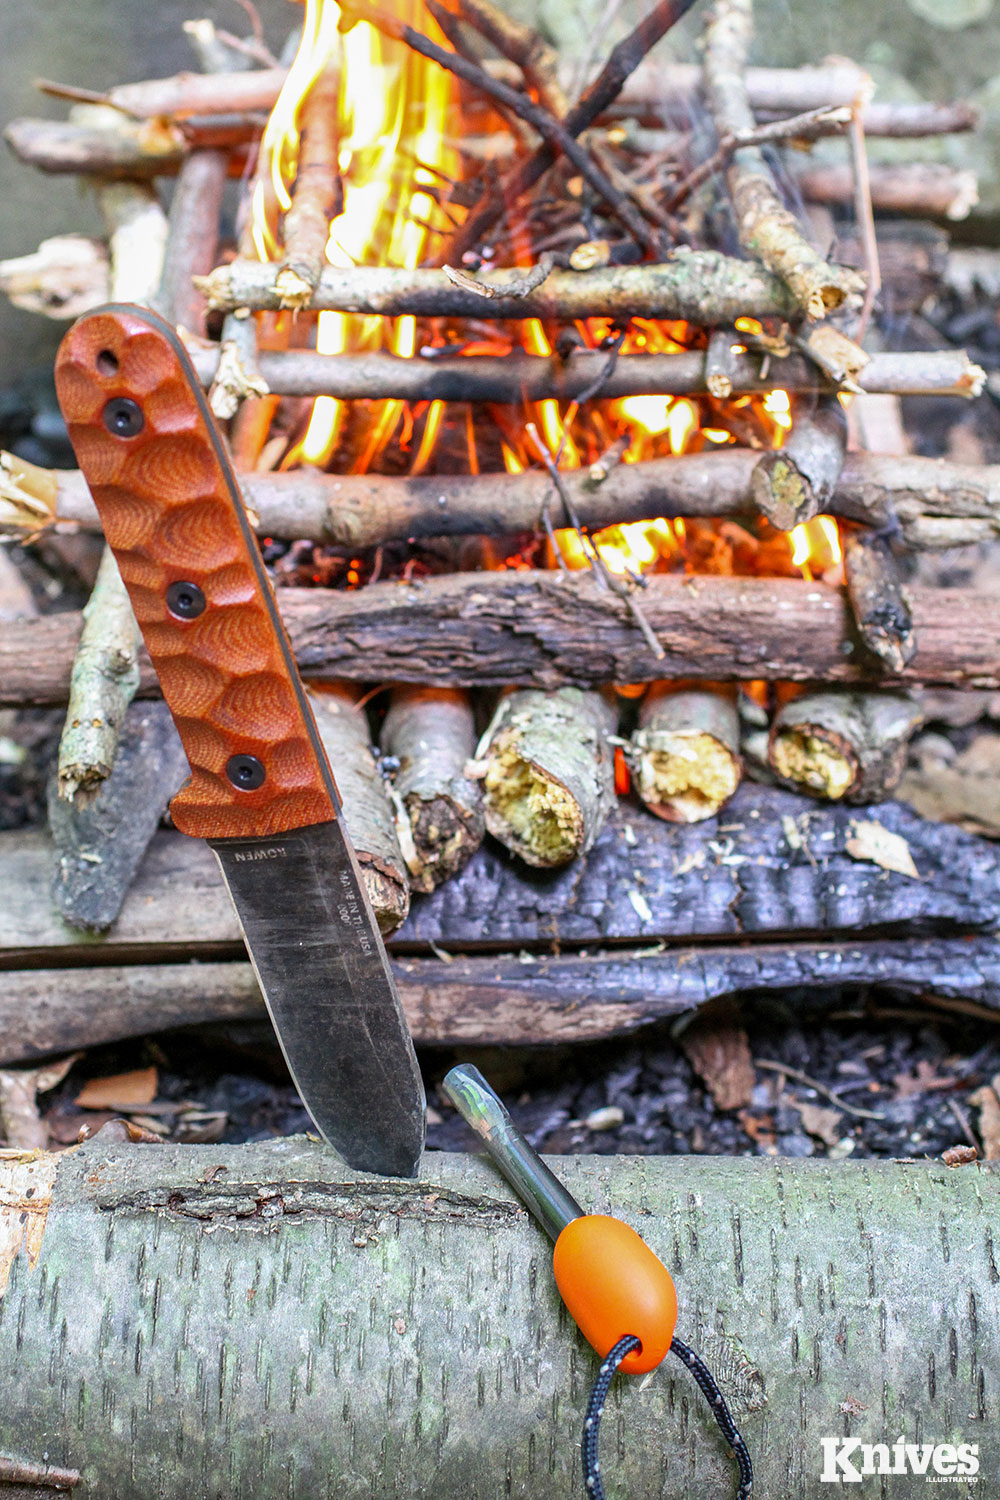 Log-cabin-style fires were made by the author with the PR4 and folding saw doing all the preparation in wet weather.